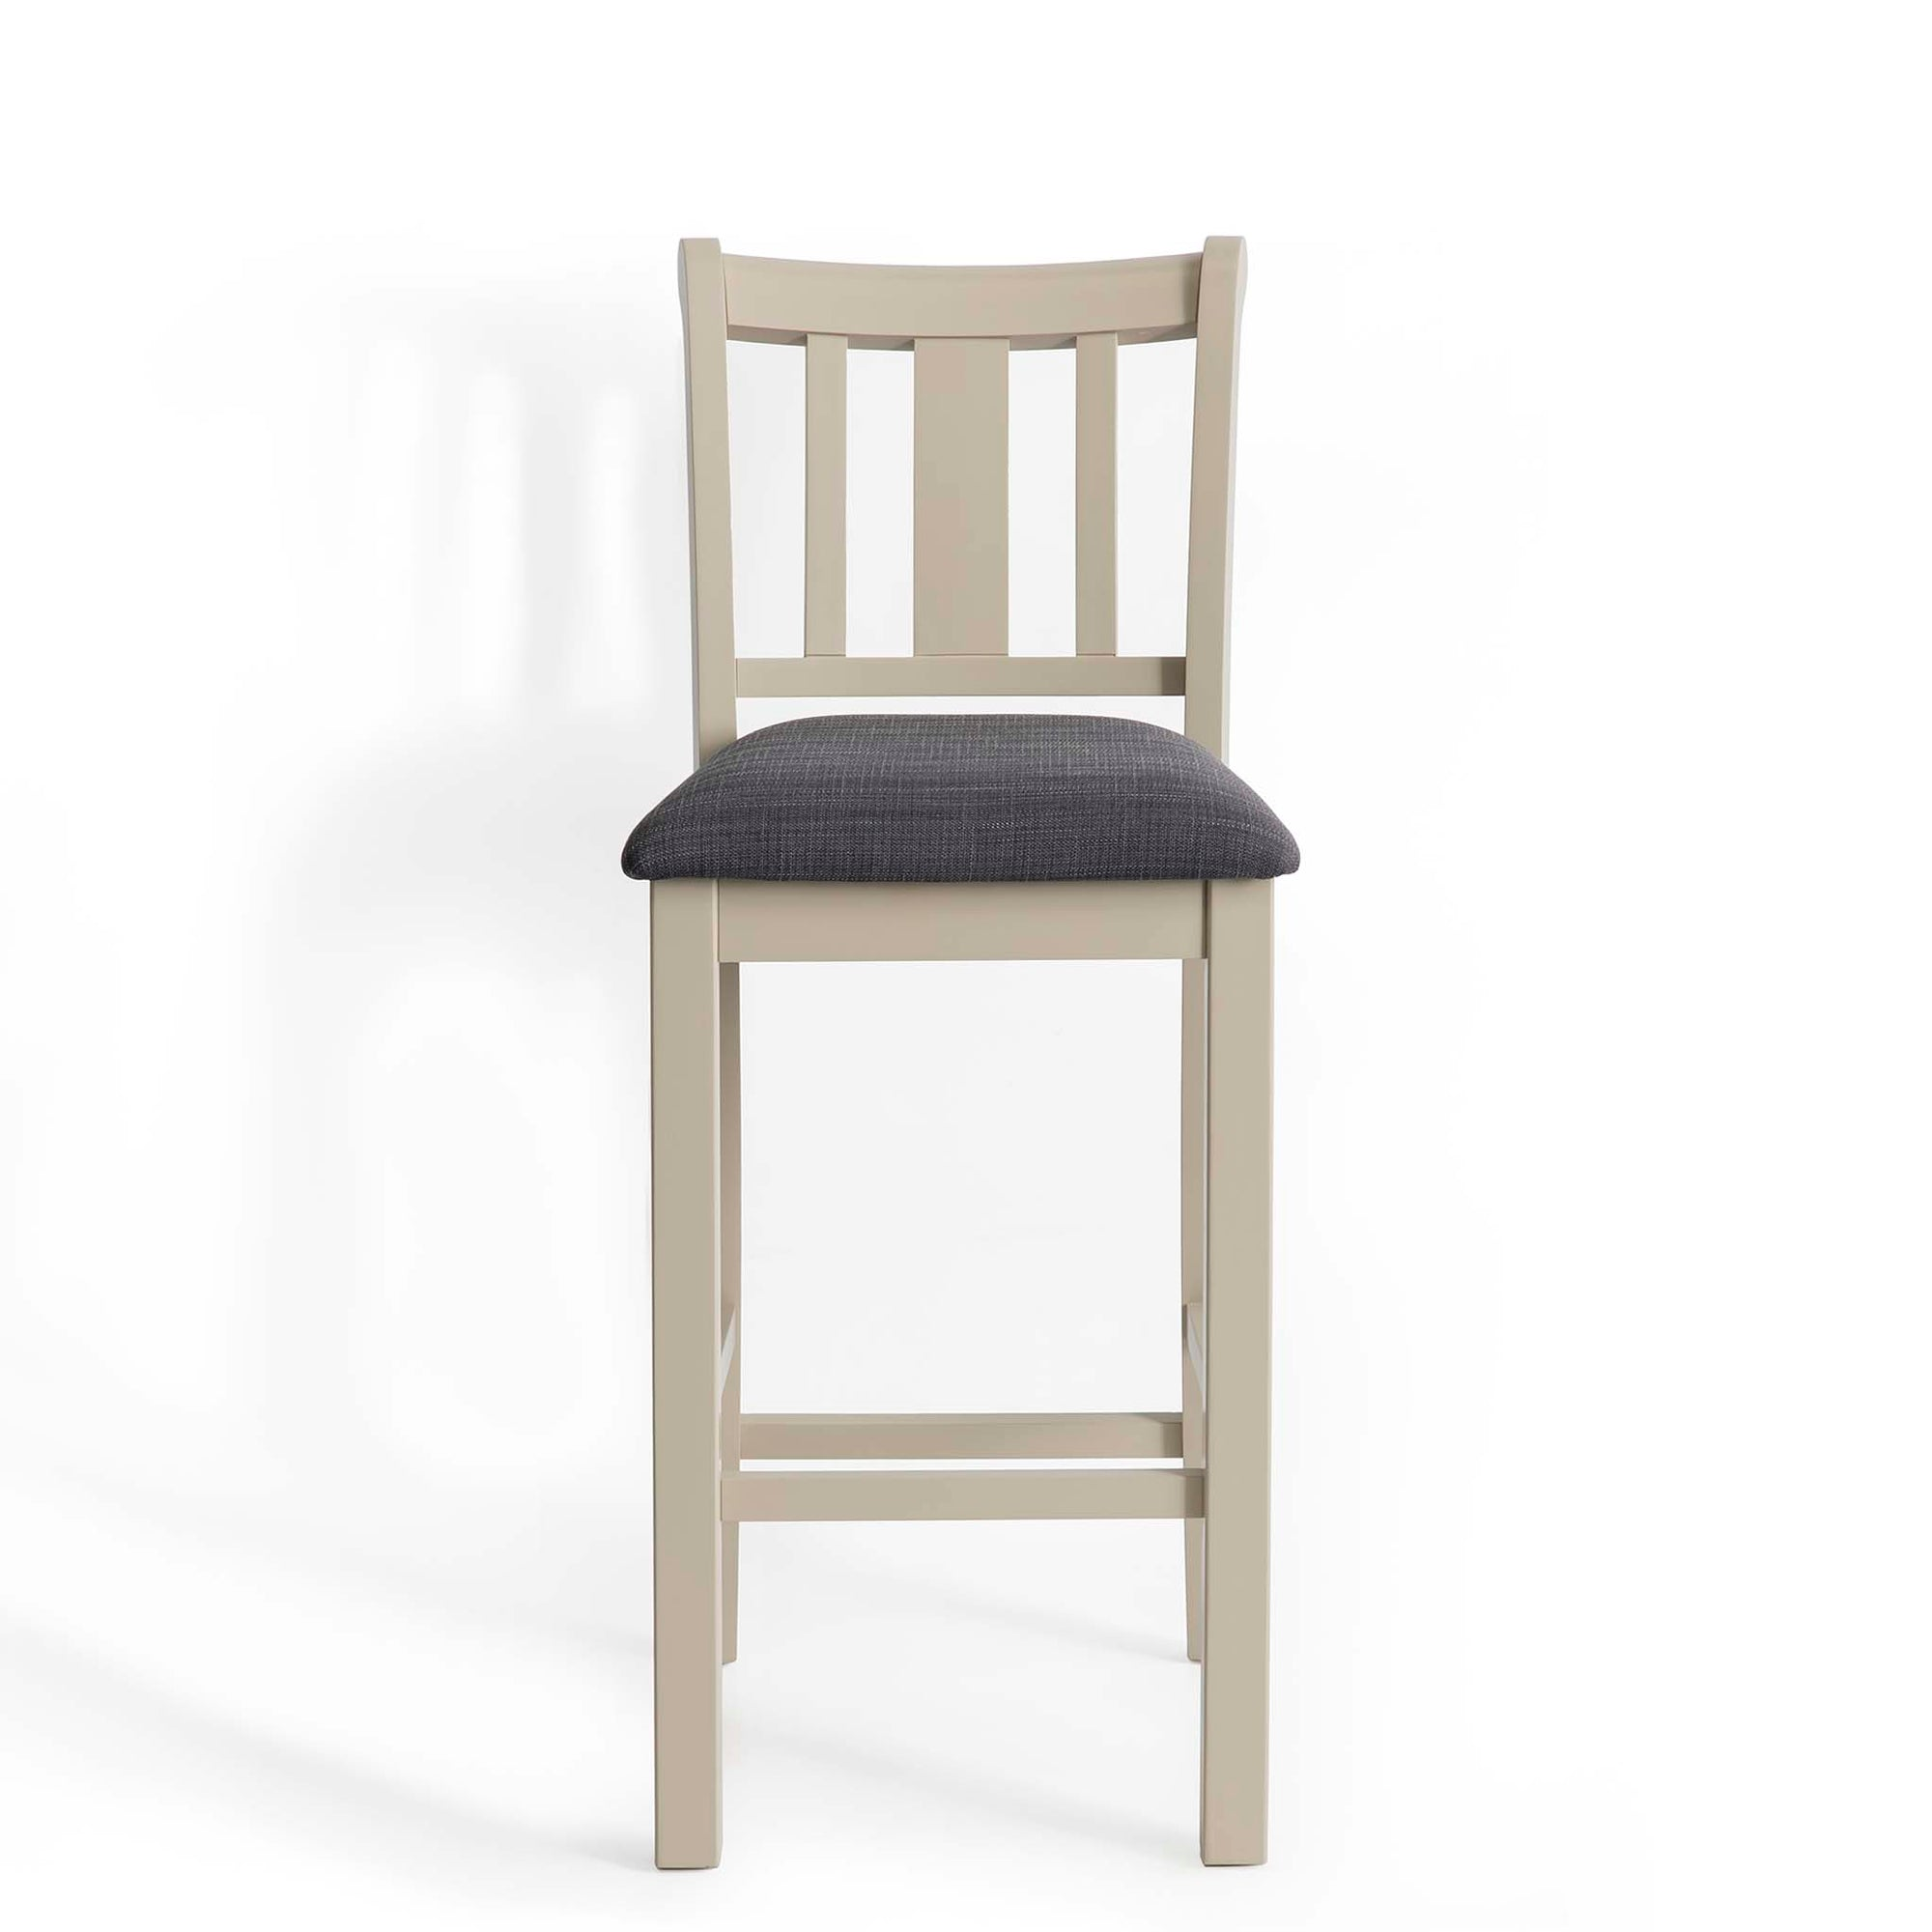 Padstow Stone Grey Breakfast Bar Stool with Padded Seat by Roseland Furniture